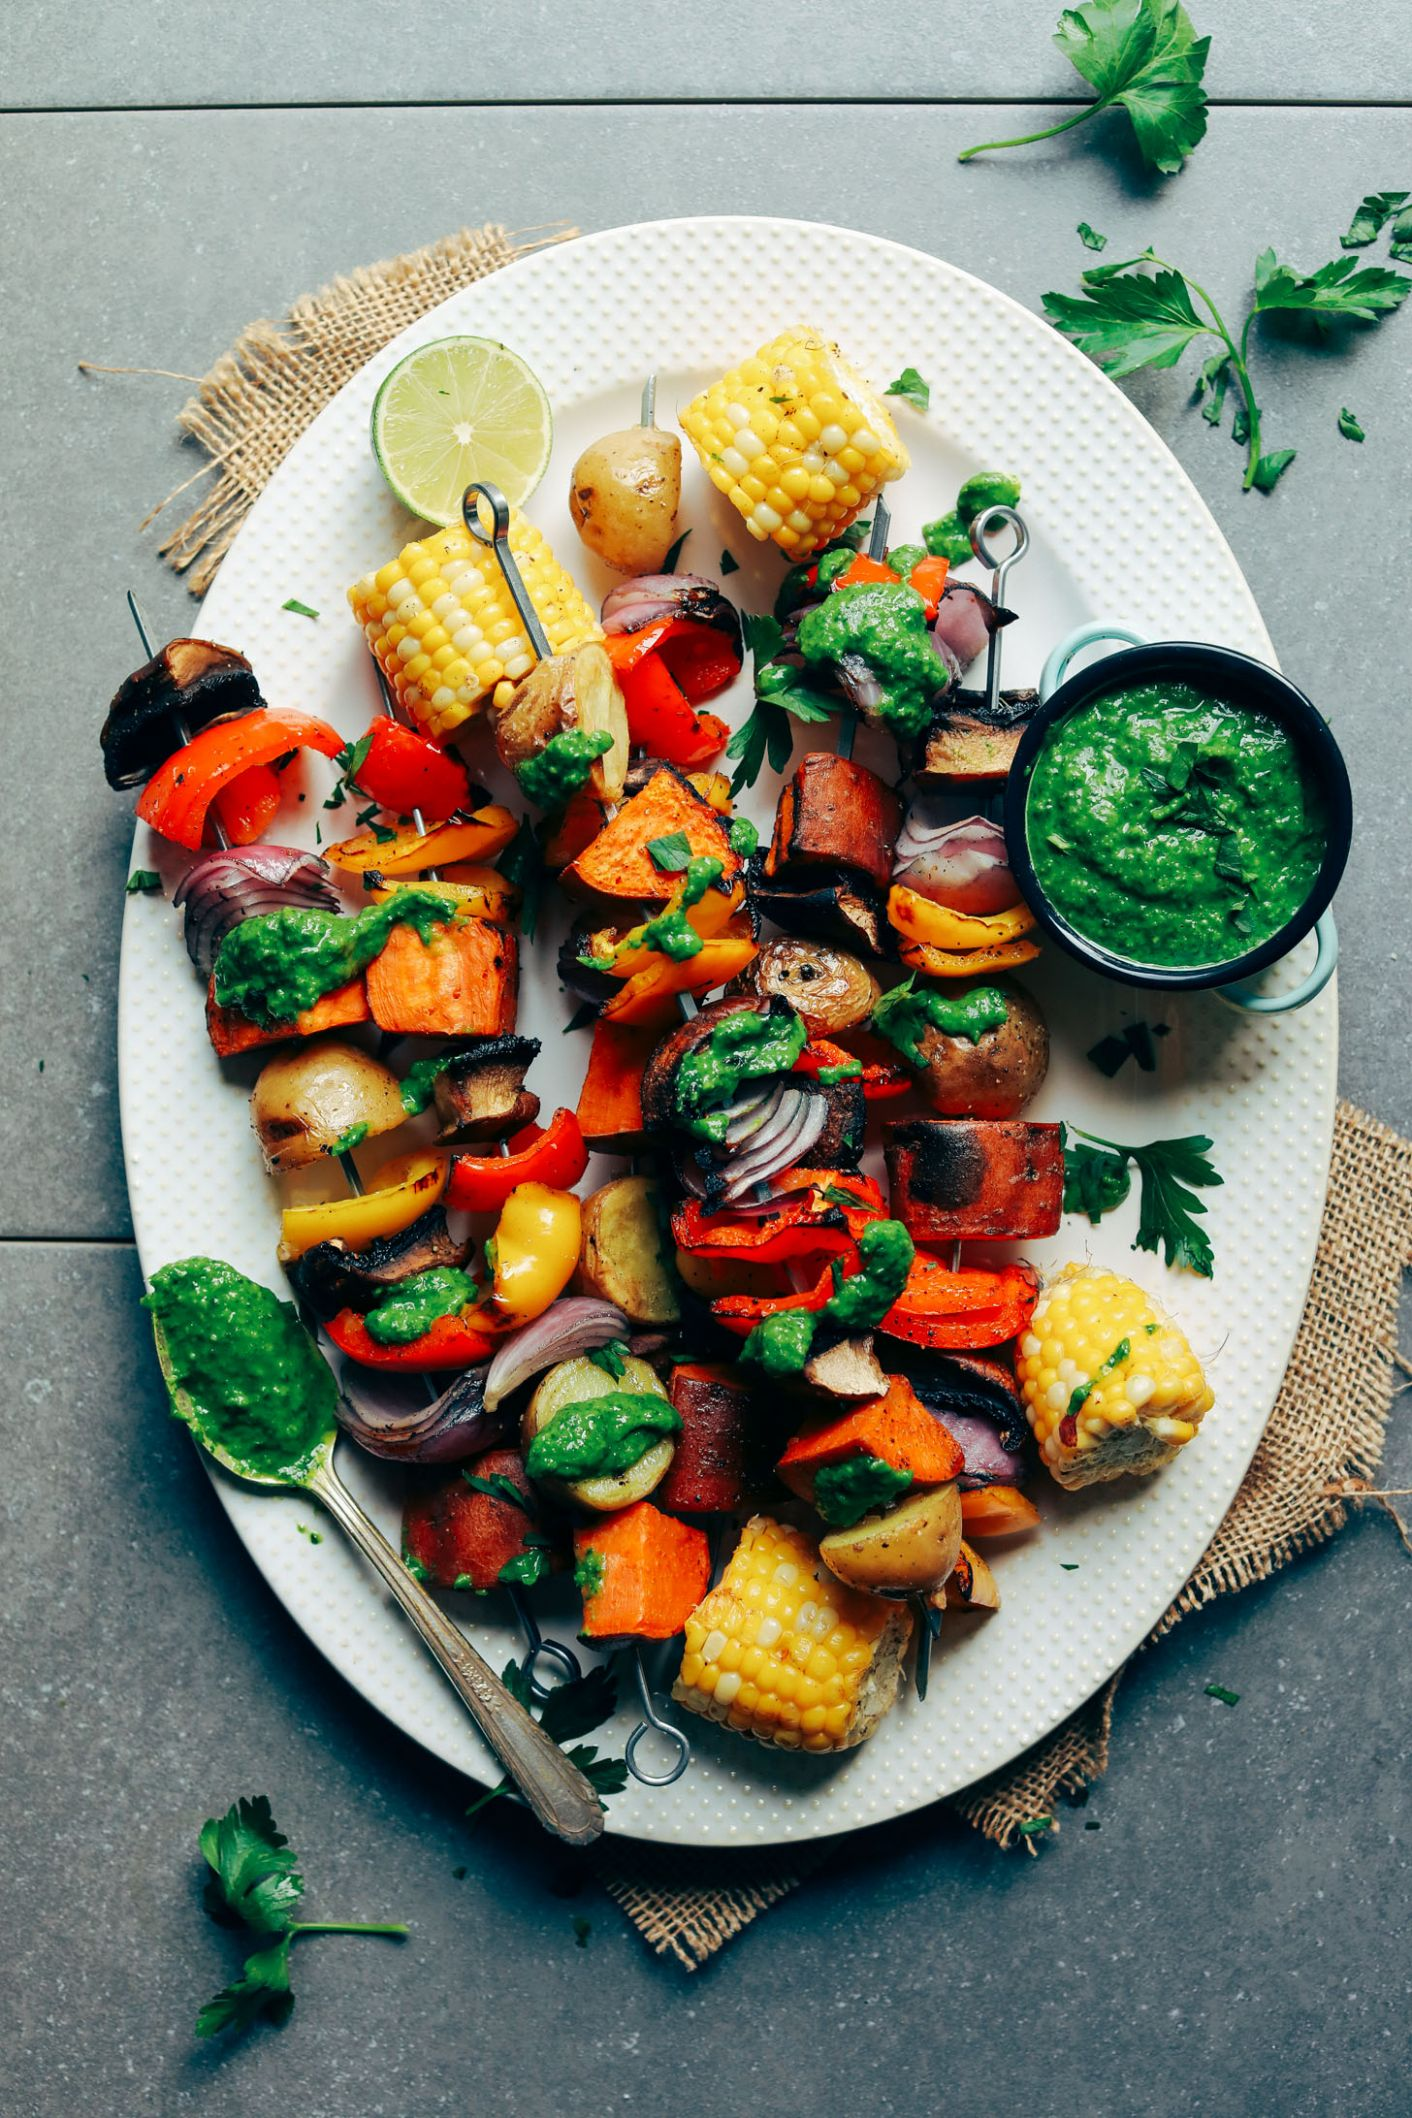 Veggie Skewers with Chimichurri Sauce - Summer Recipes On The Grill